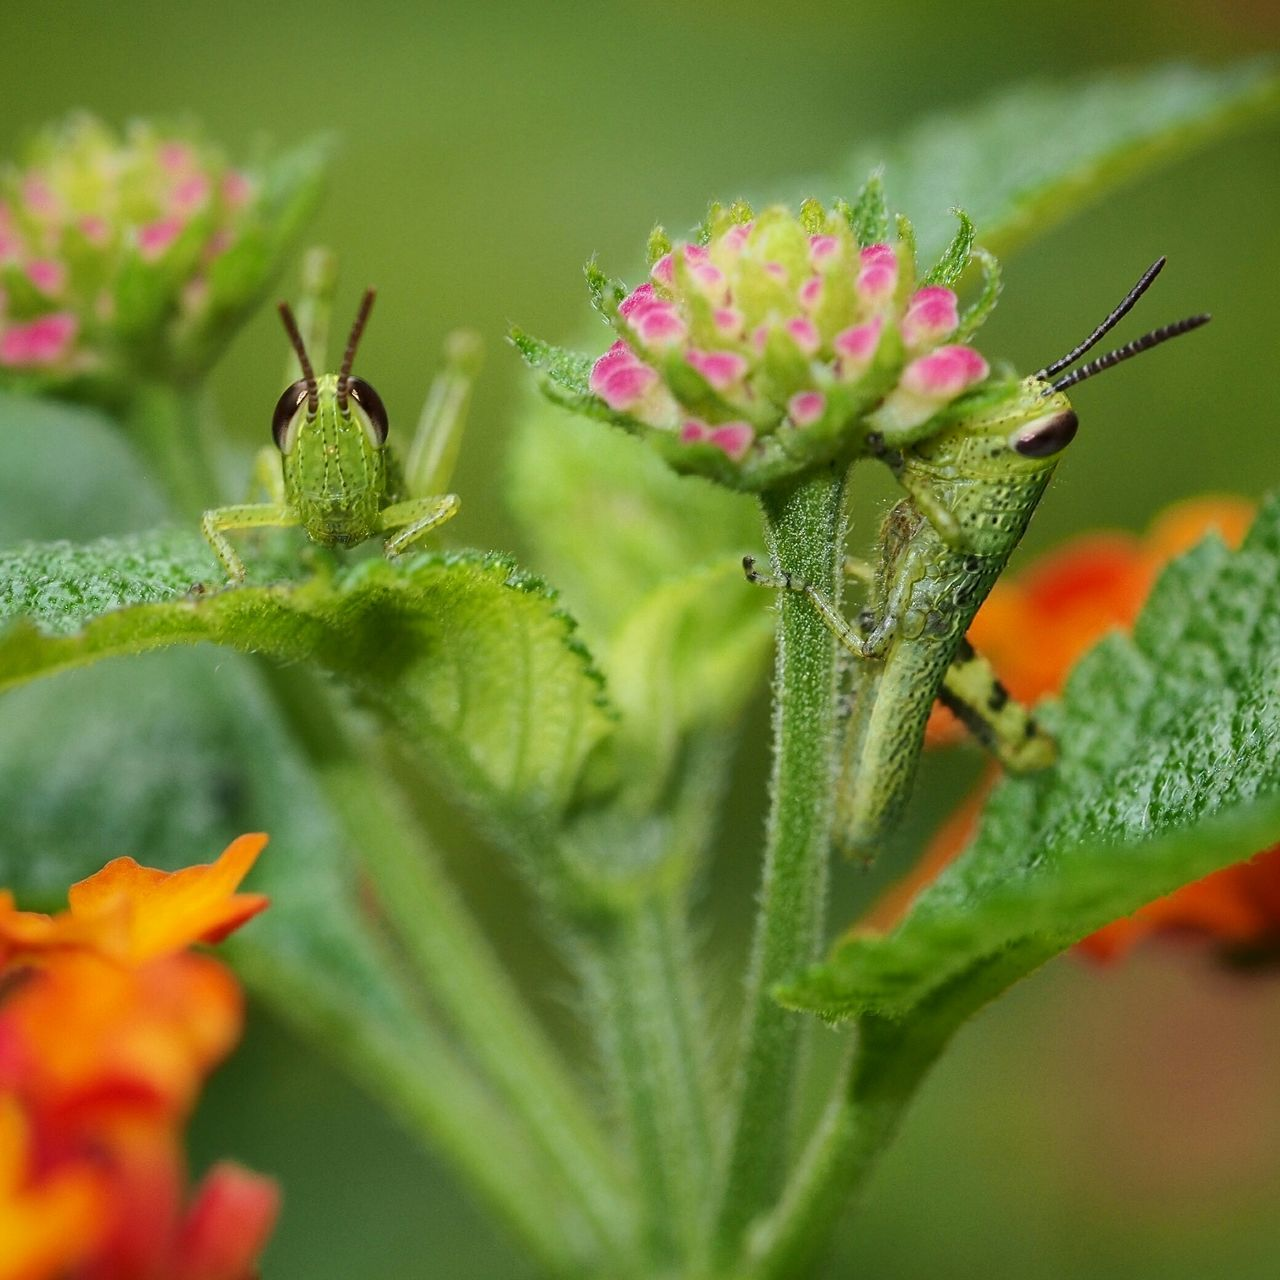 Close-Up Of Insects On Plant